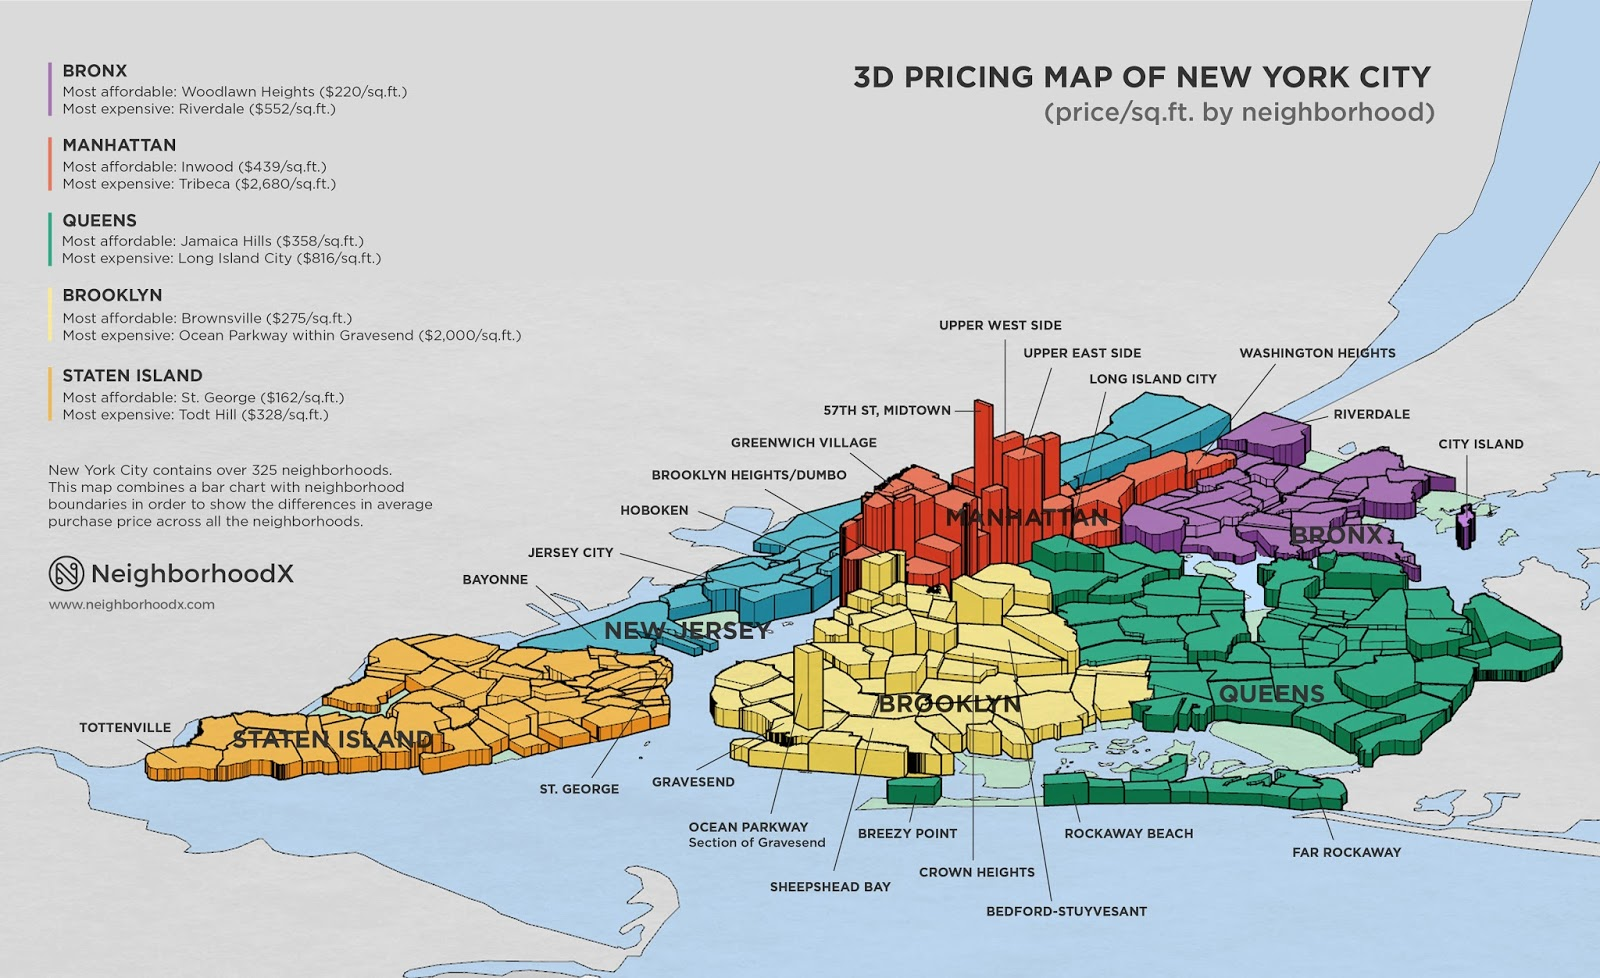 3D Pricing map of New York (price/sq.ft. by neighborhood)